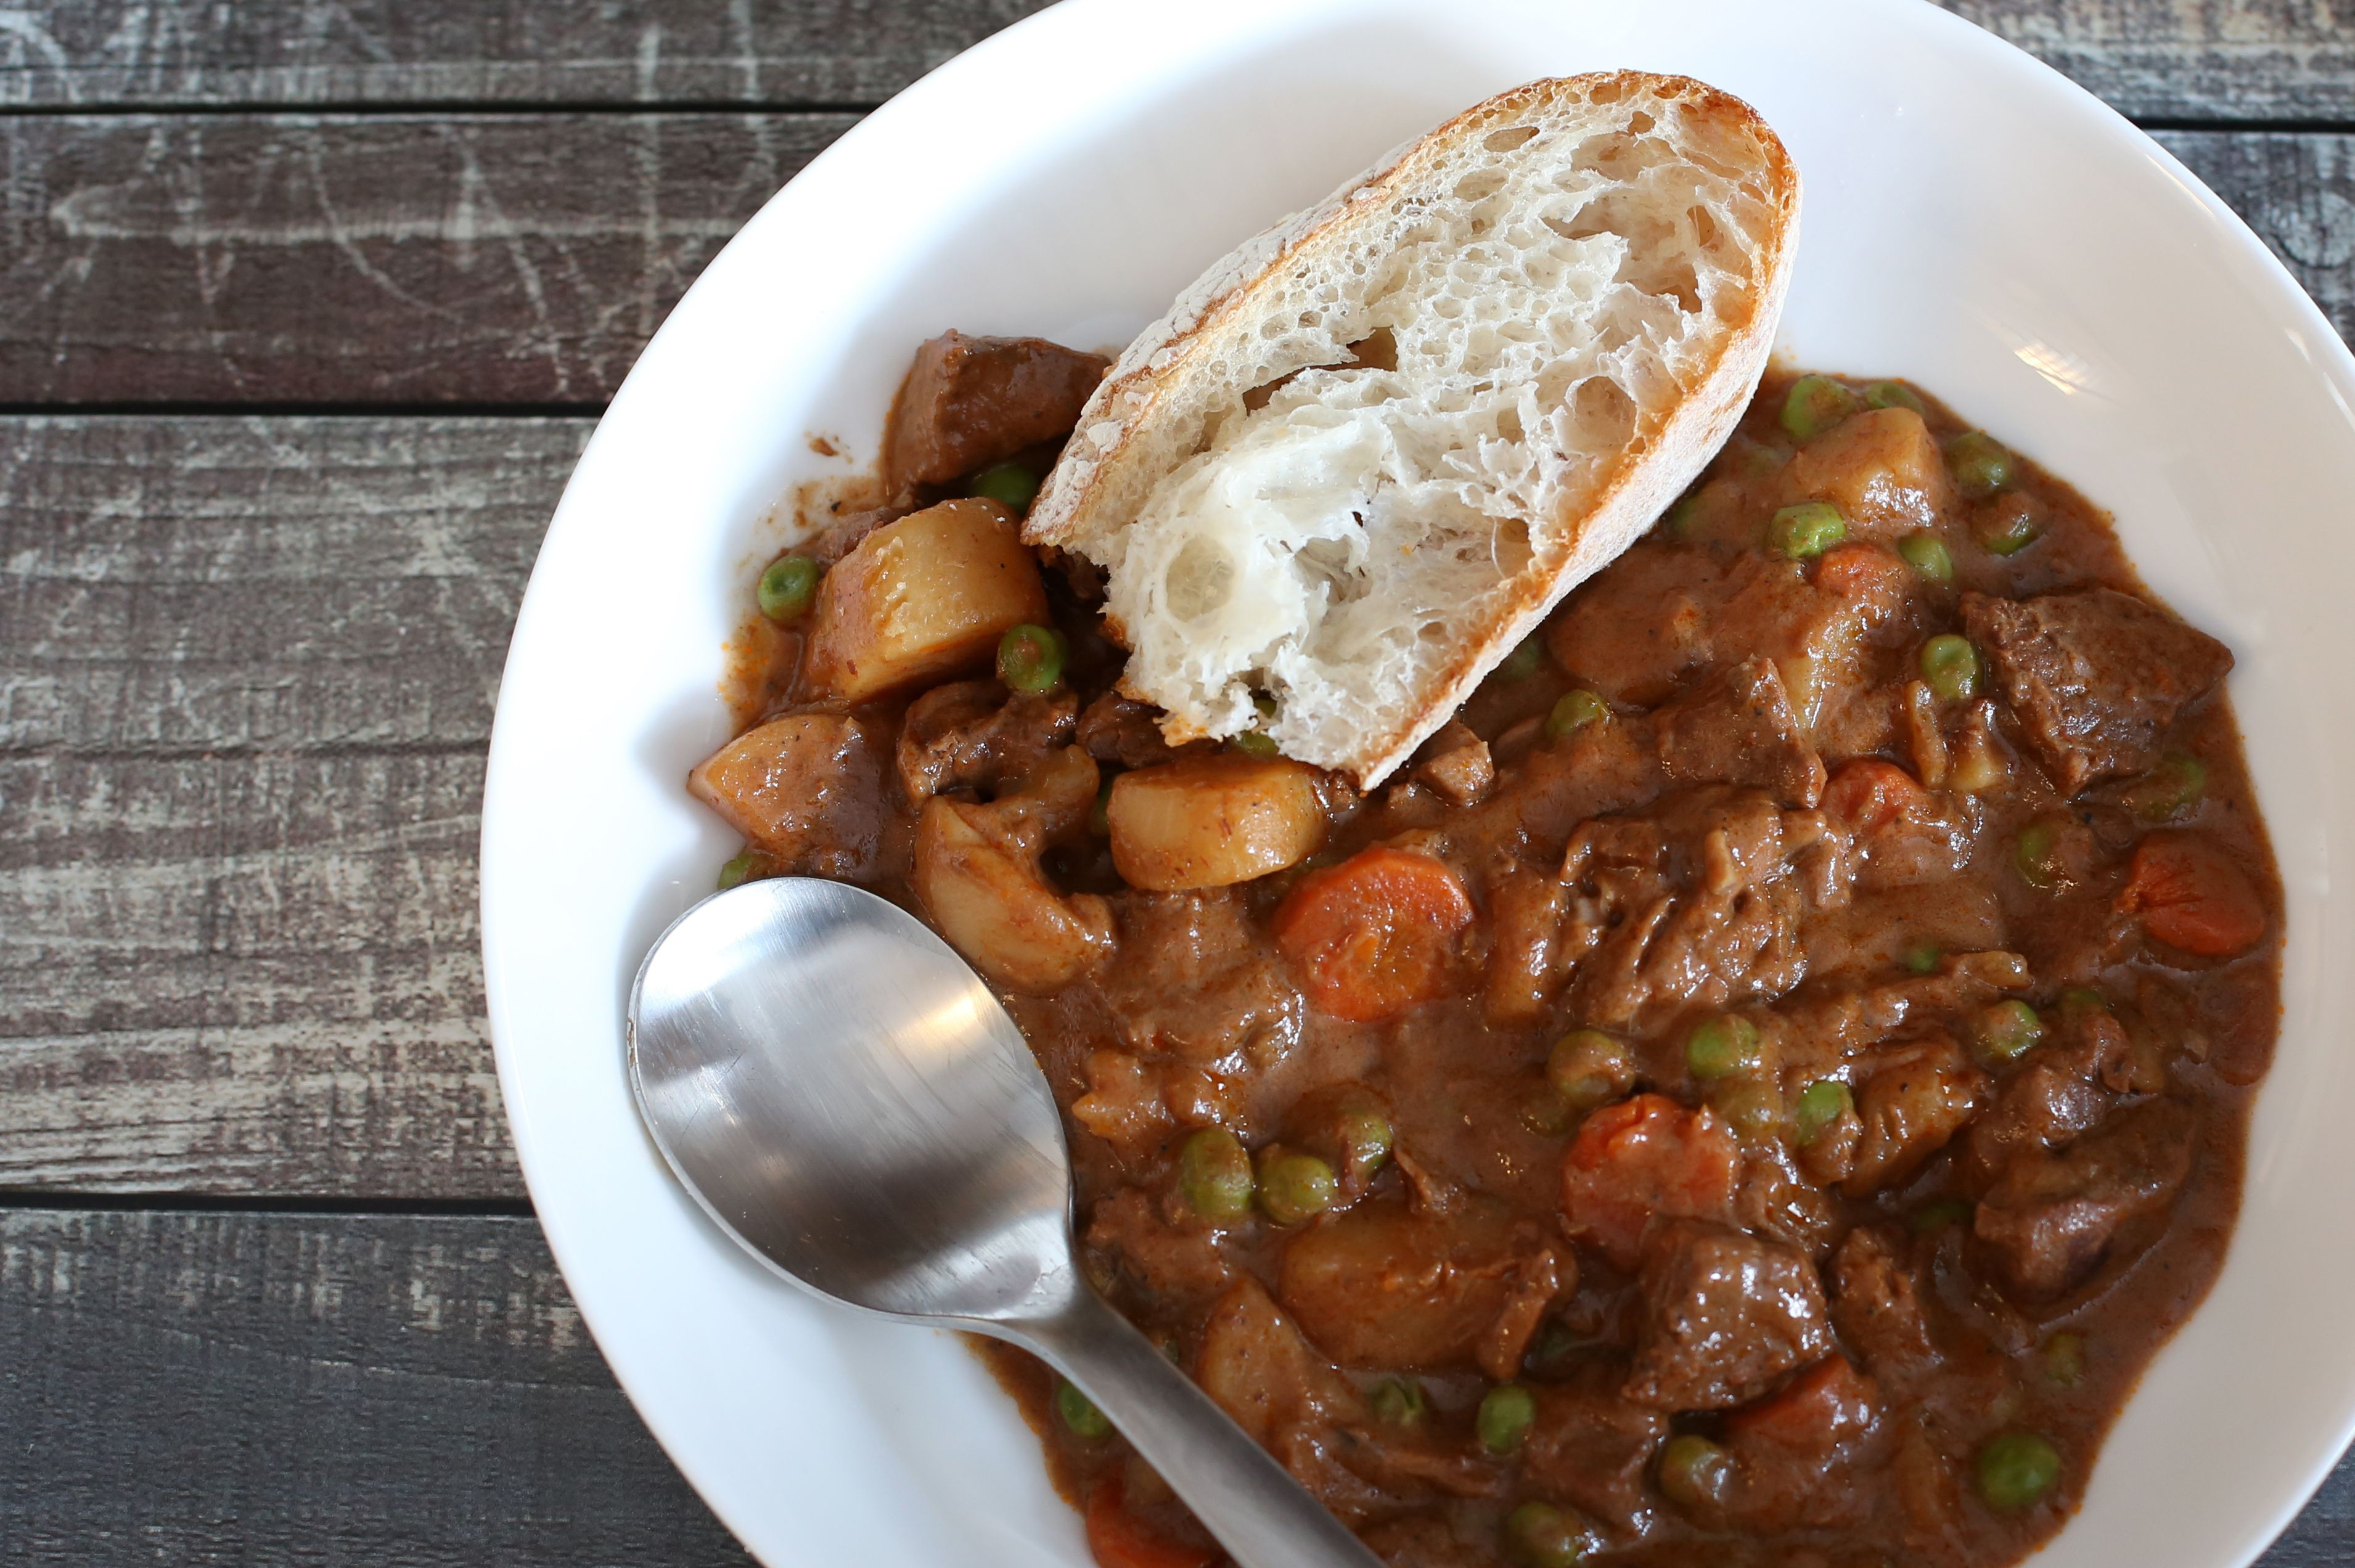 Beef and Beer Stew With Herbs